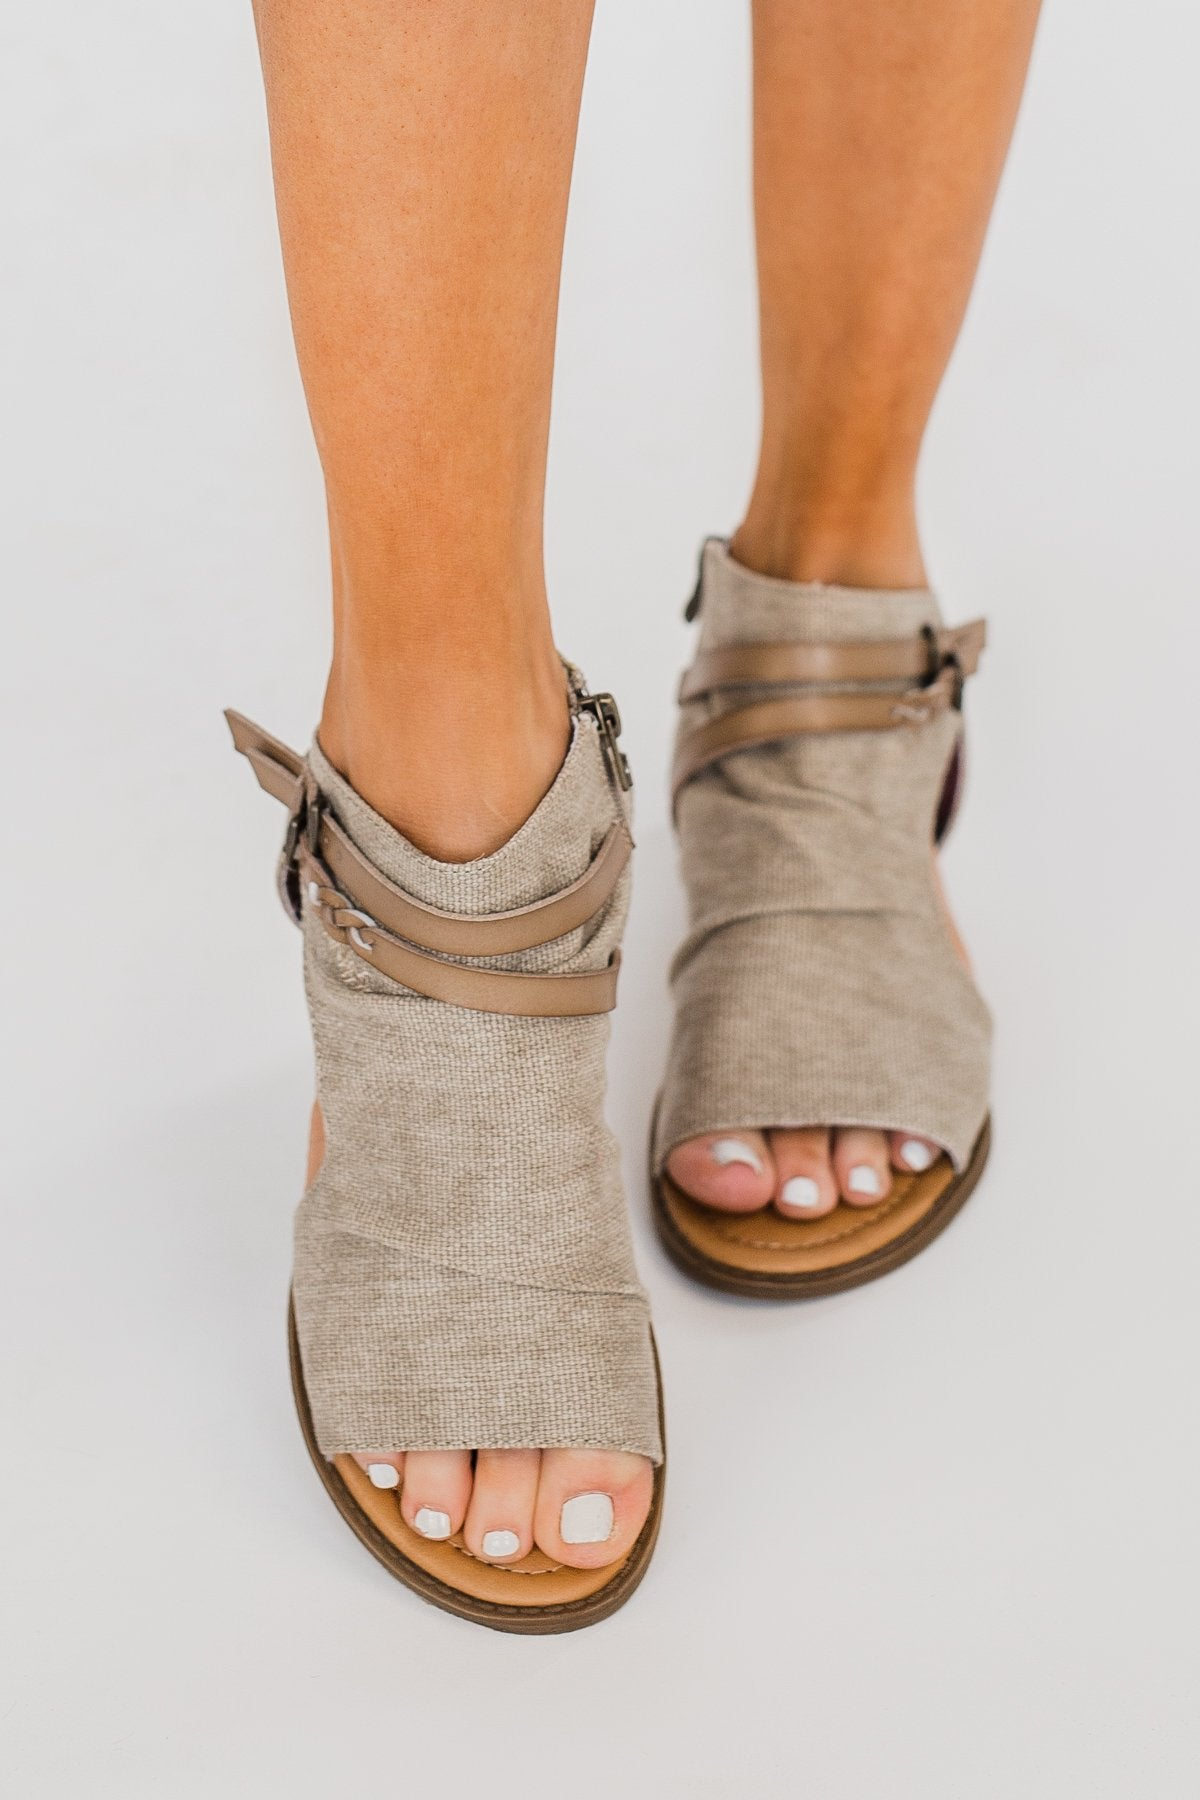 Blowfish Blumoon Sandals- Light Taupe